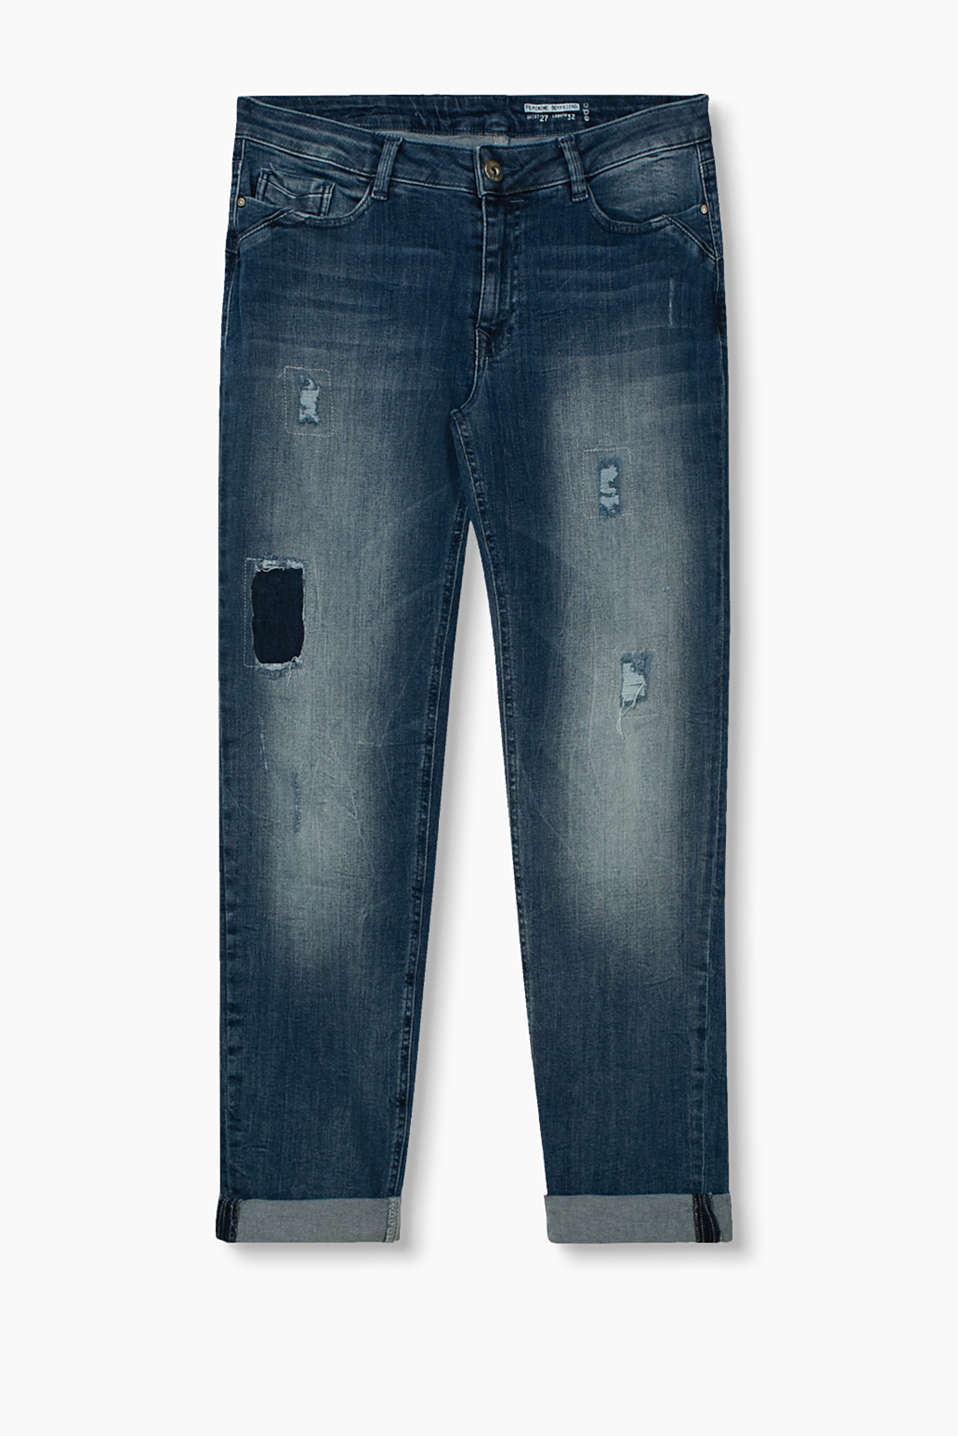 with faced holes, faded areas and 2-tone back pockets